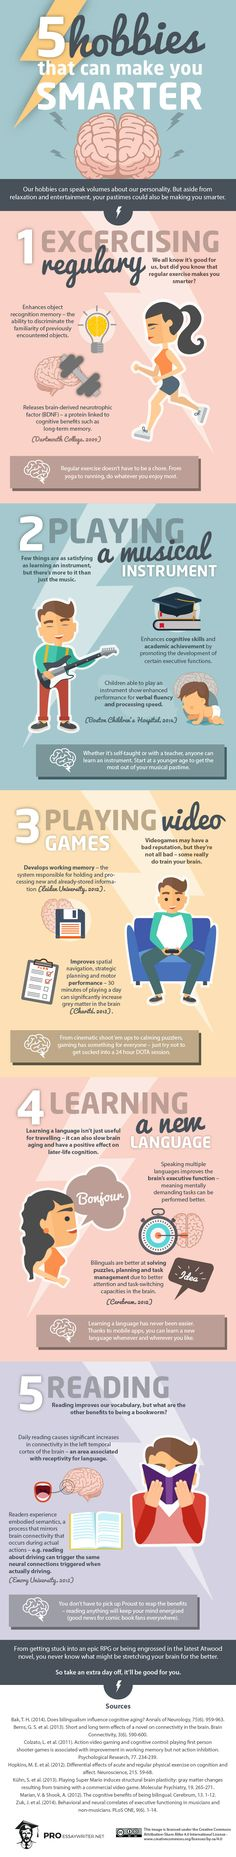 Exercising regularly, reading and video games can help increase your logic skills as well as keep your moods at bay. | THE UT.LAB | Loves Innovative Ideas *